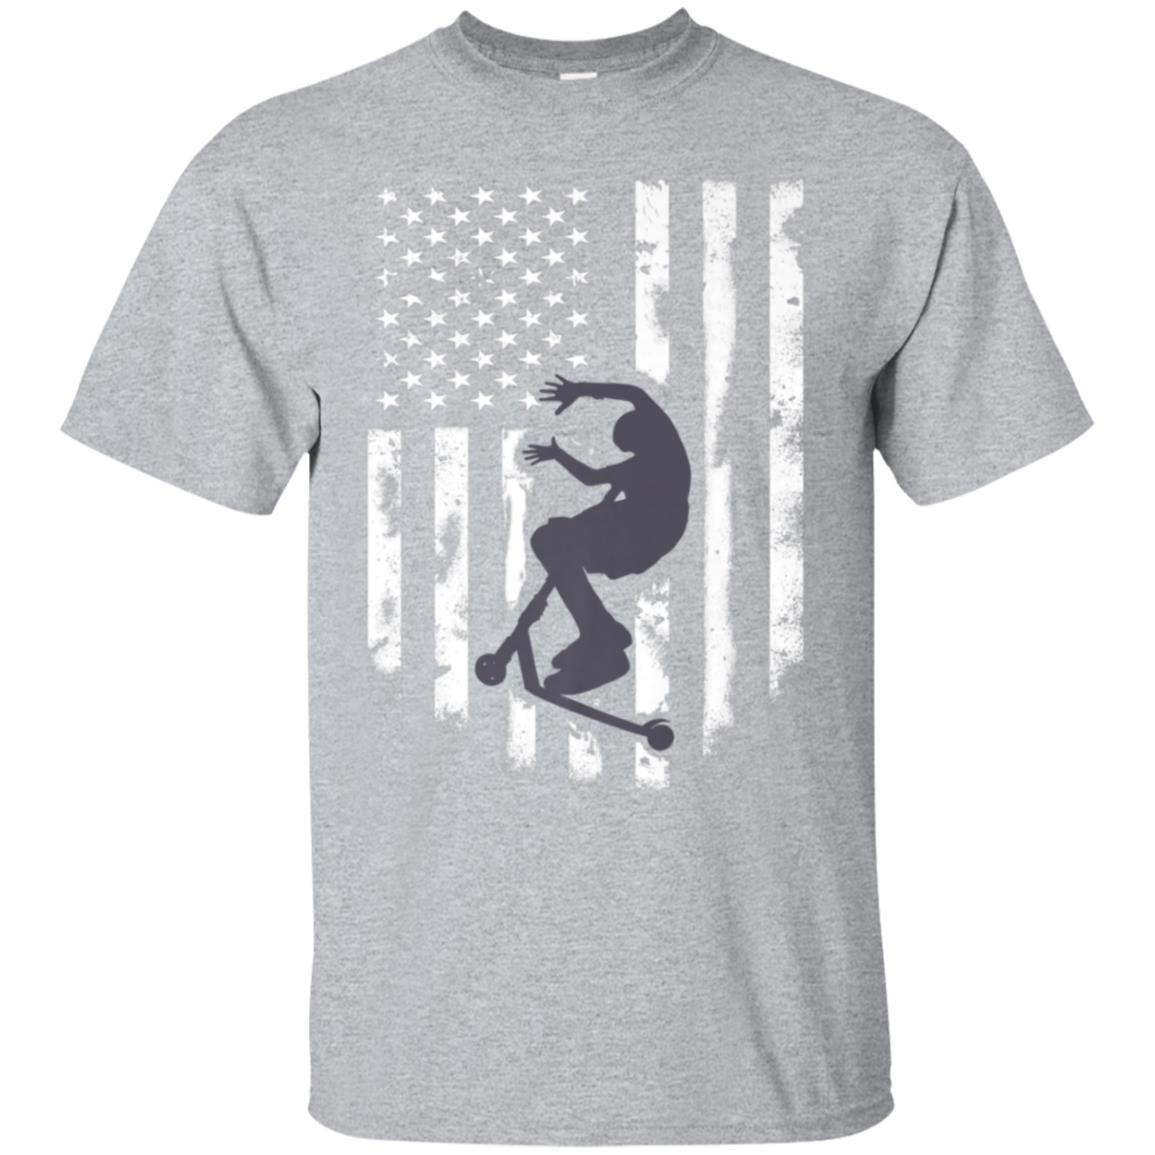 American Flag Stunt Scooter T-Shirt Cool Scootering Top Tee 99promocode